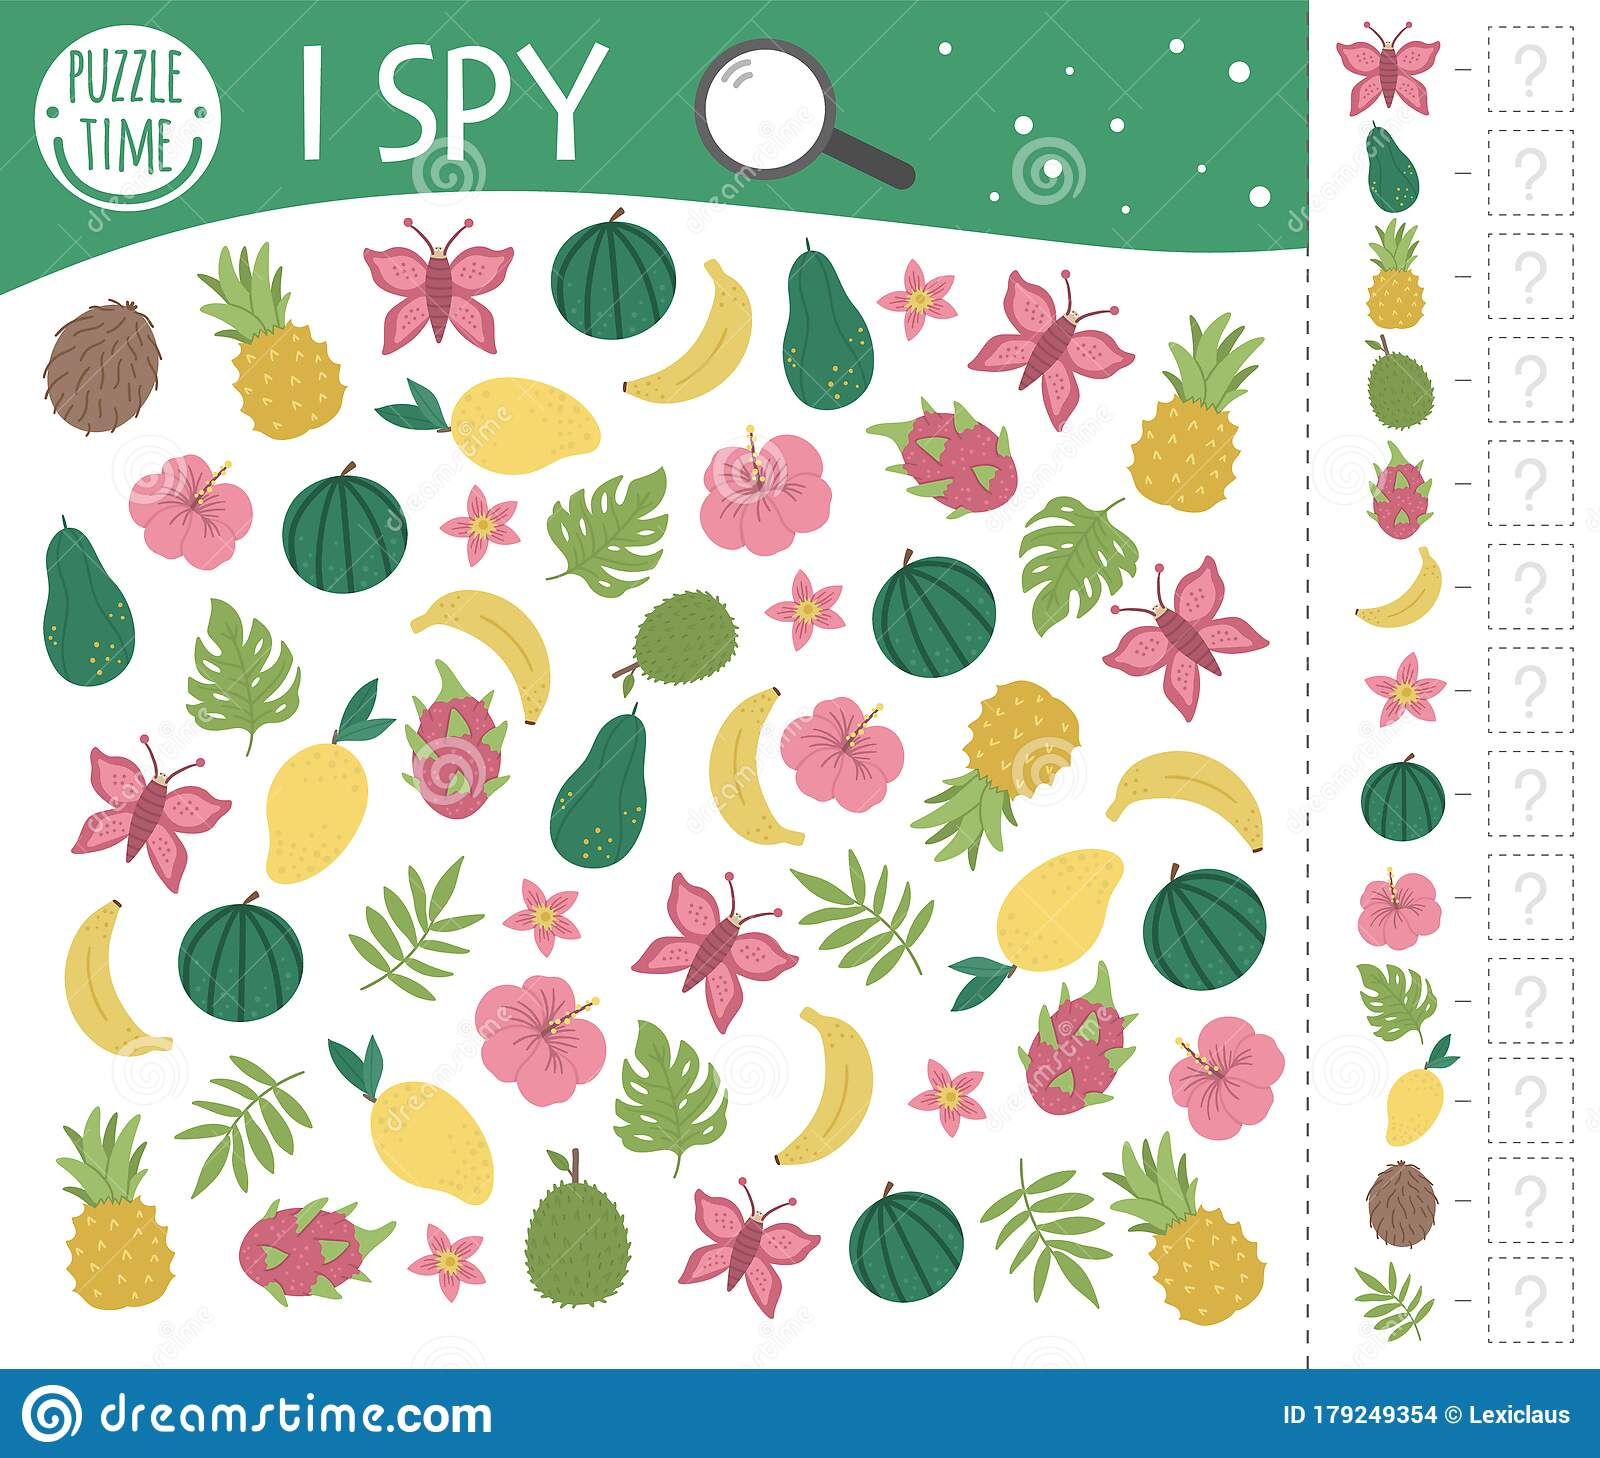 Tropical I Spy Game For Kids Exotic Searching And